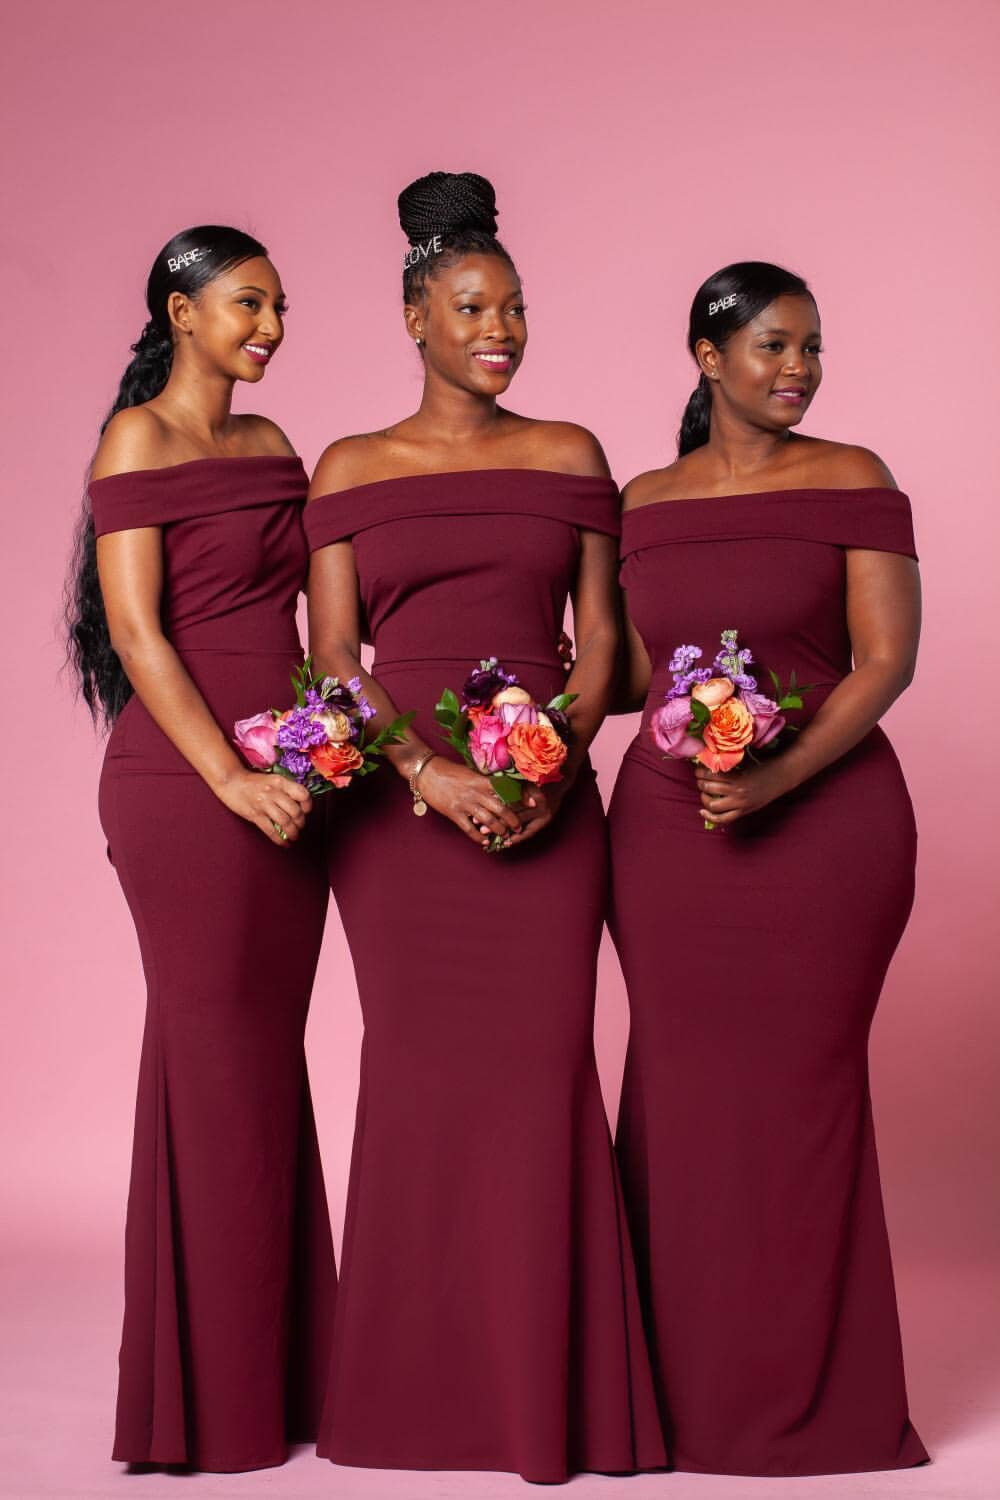 25 Perfete Fall Bridesmaid Dresses That Will Drop Jaws Perfete Burgundy Bridesmaid Dresses Modest Bridesmaid Dresses Fall Bridesmaid Dresses [ 1500 x 1000 Pixel ]